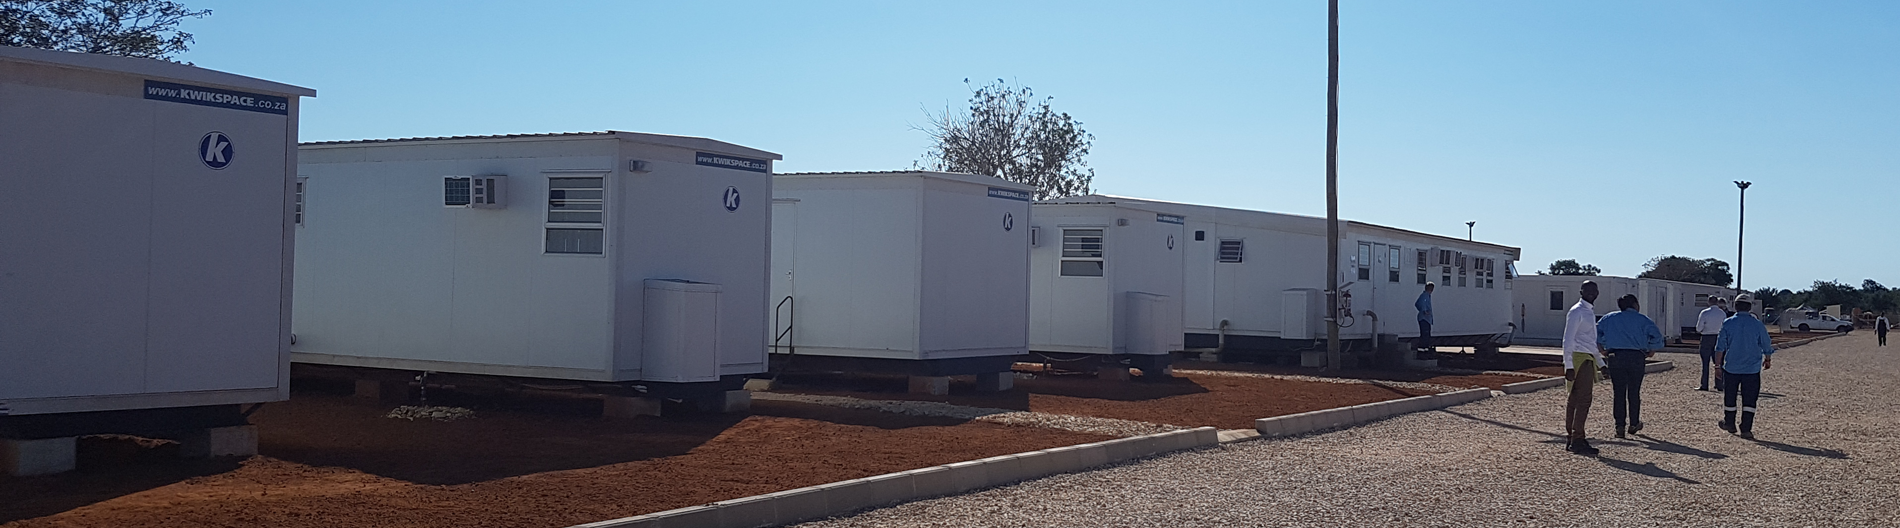 Modular units for commercial, industrial and residential applications are rented and sold.